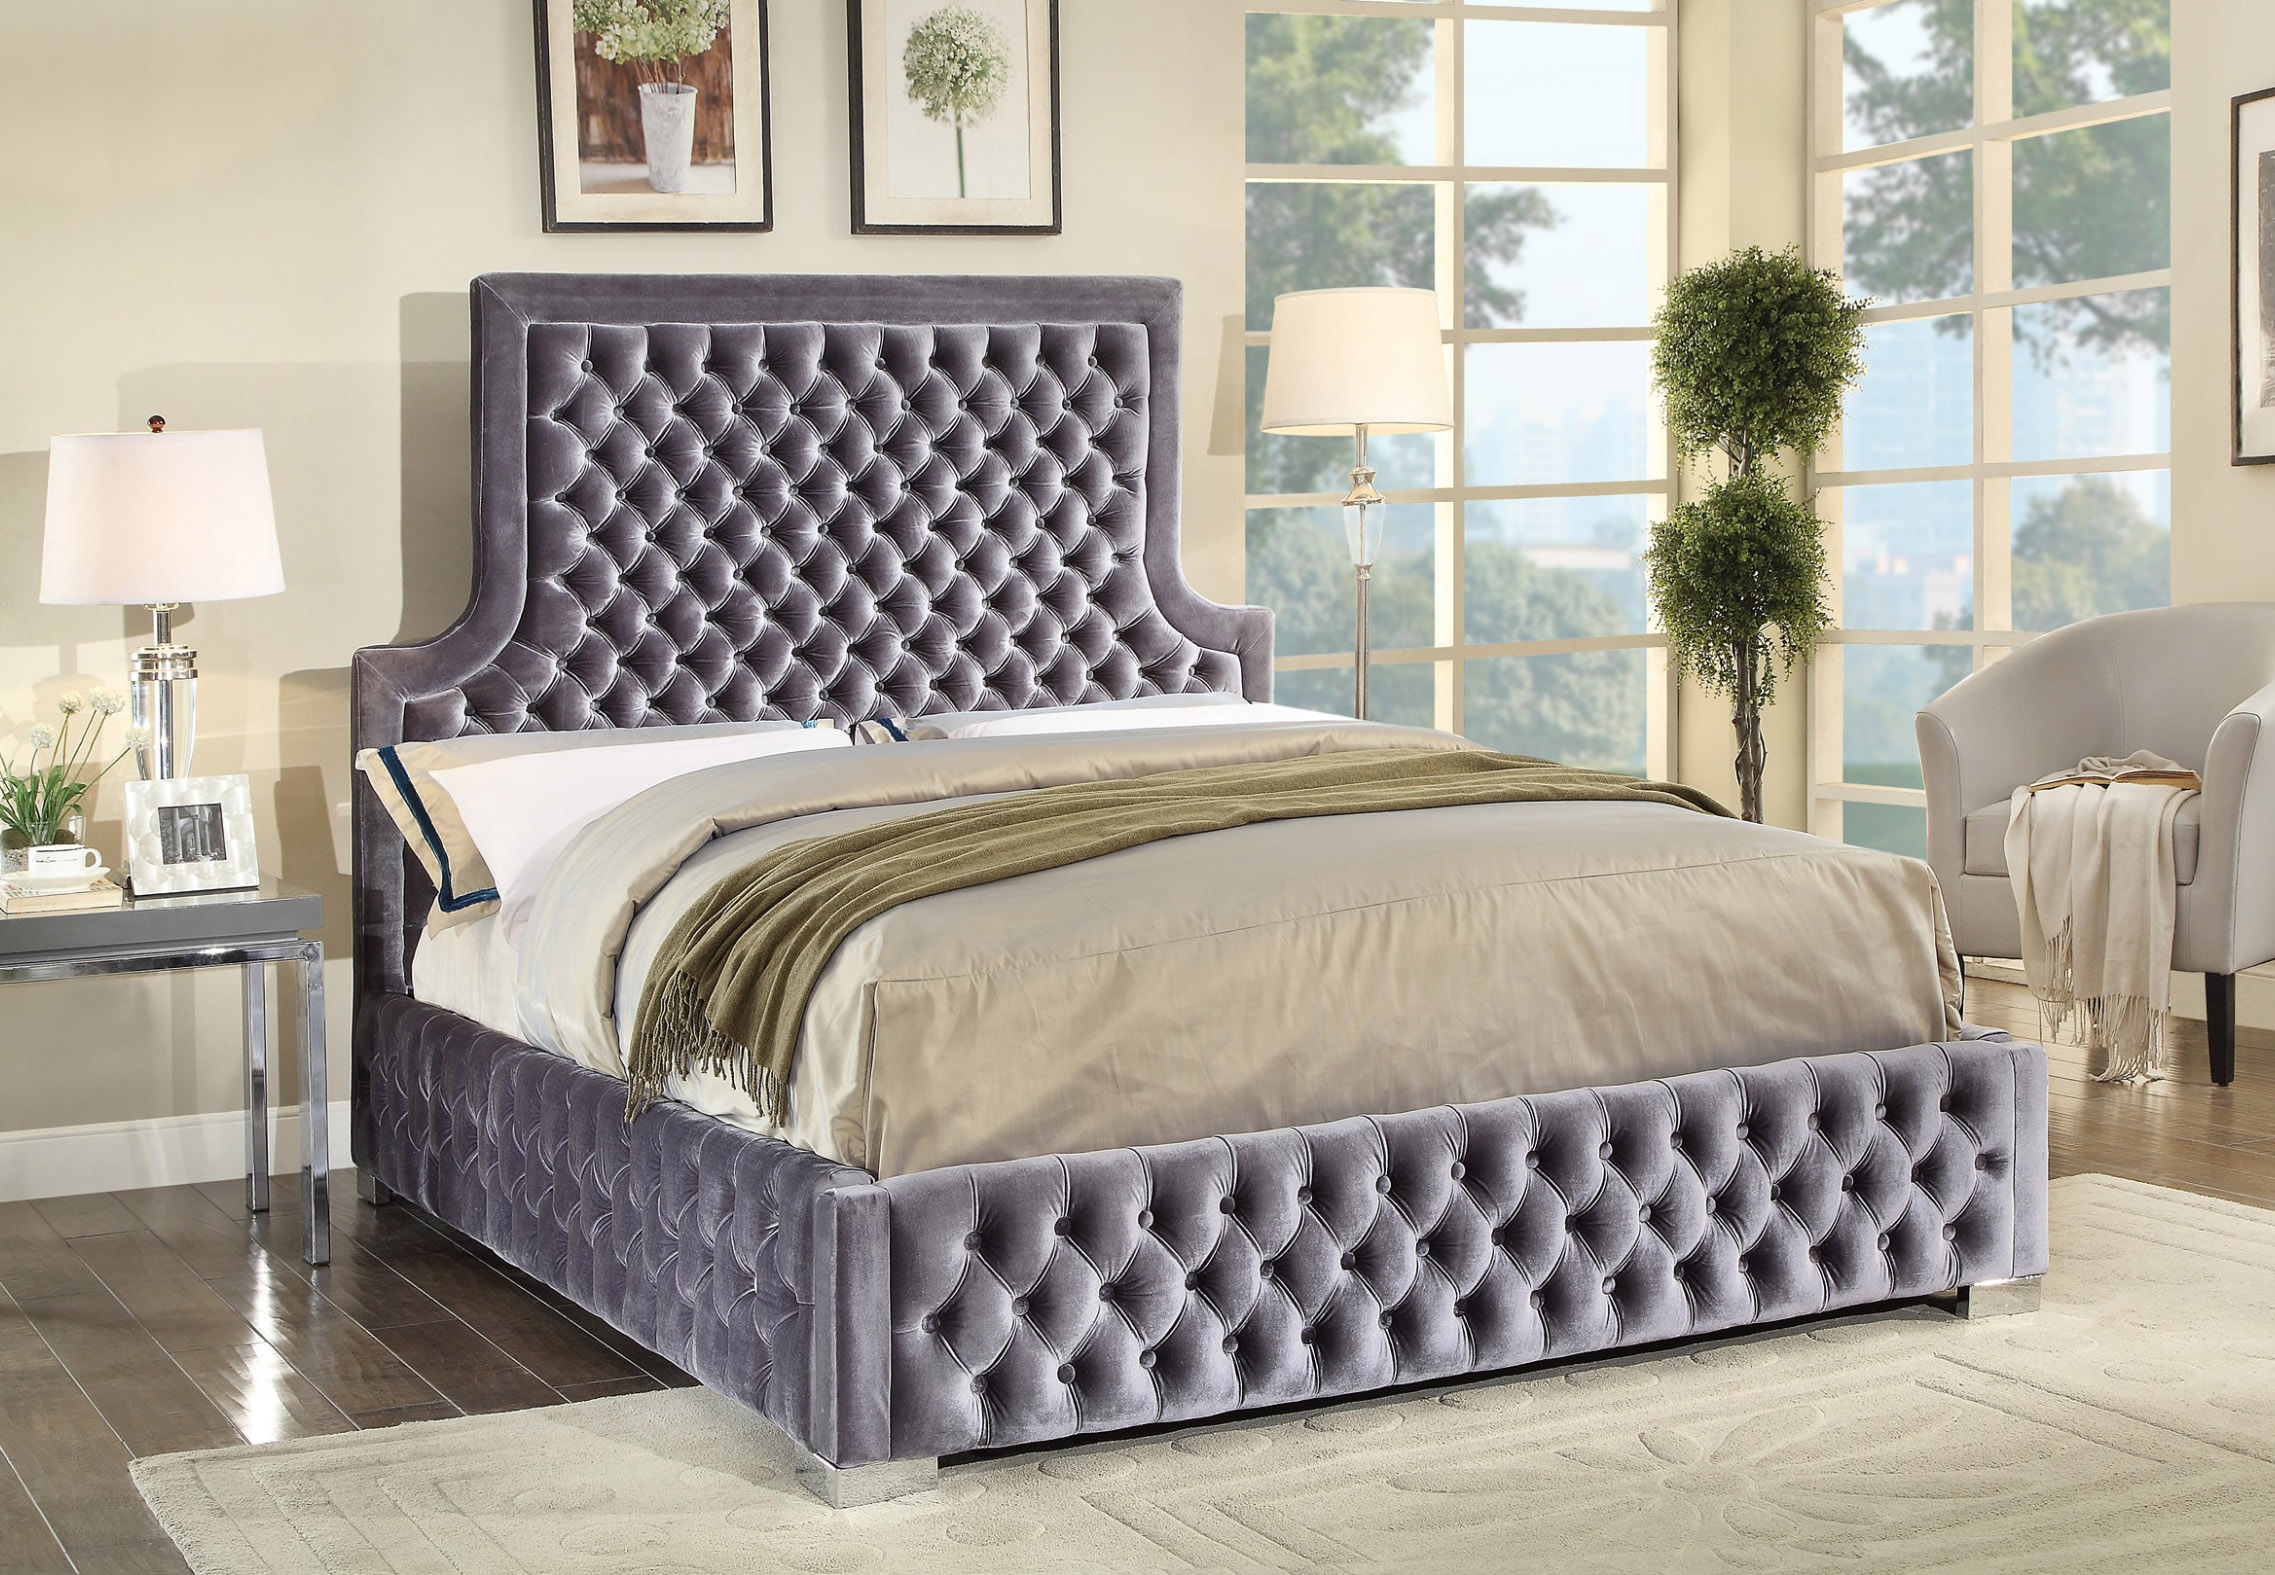 BEDS-INT-5600